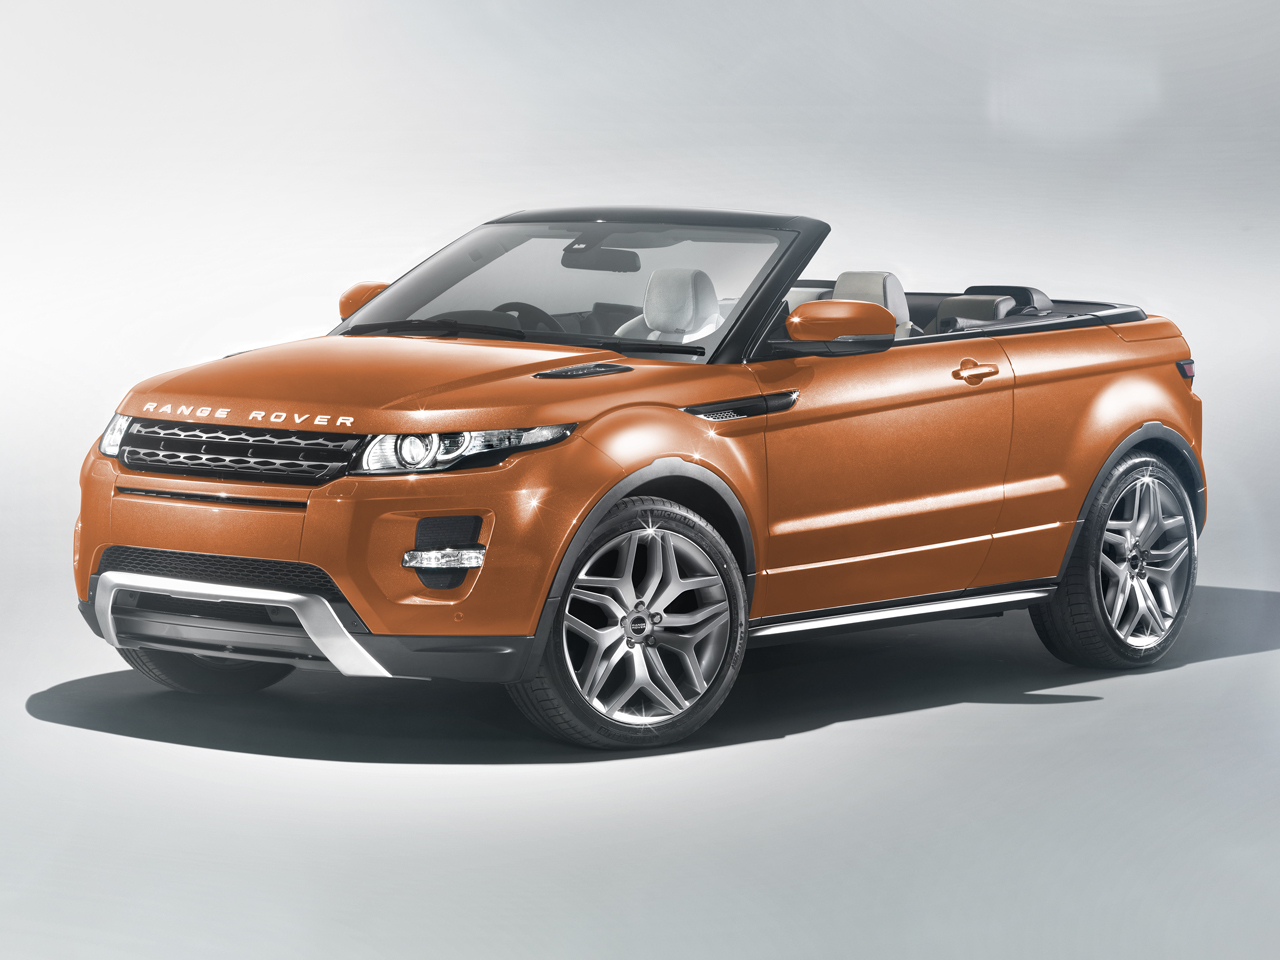 range rover evoque cabriolet 2015 pr t pour gen ve l 39 argus. Black Bedroom Furniture Sets. Home Design Ideas